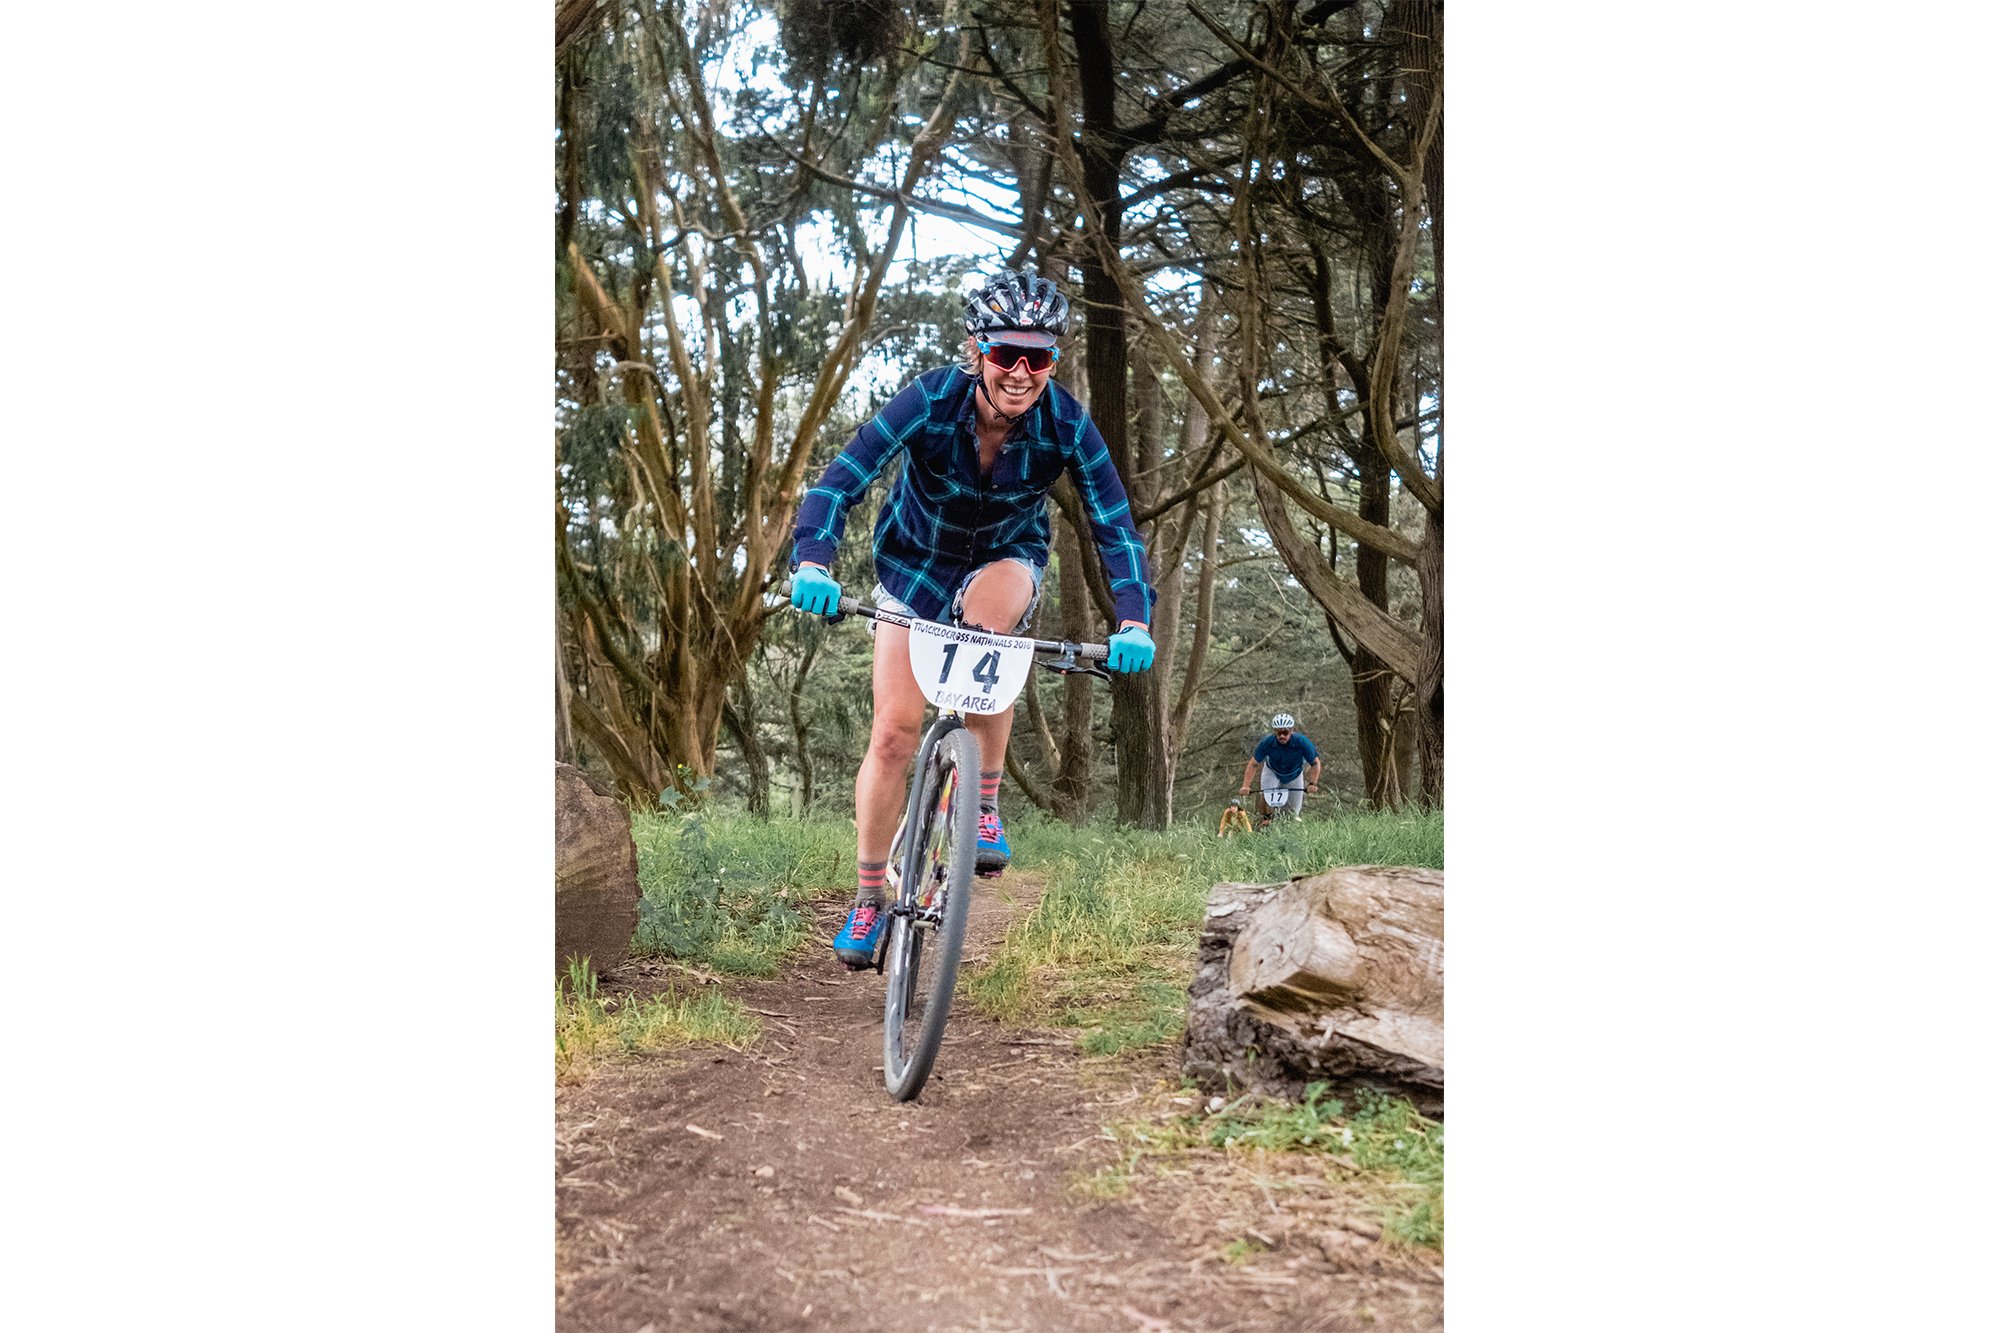 Tracklocross with Resistance Racing in the Bay Area